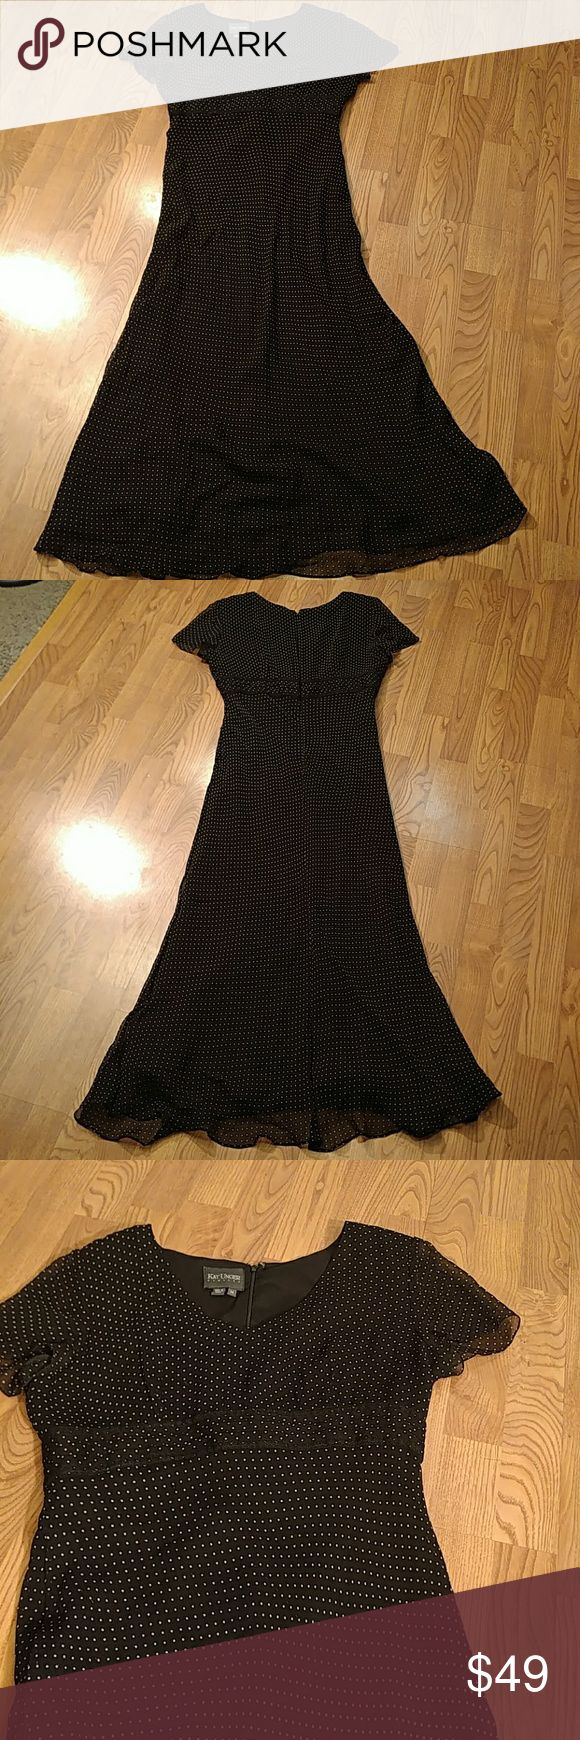 Kay Unger New York Silk black Dress Kay Unger New York Dress 100% silk, classy, EUC Kay Unger Dresses